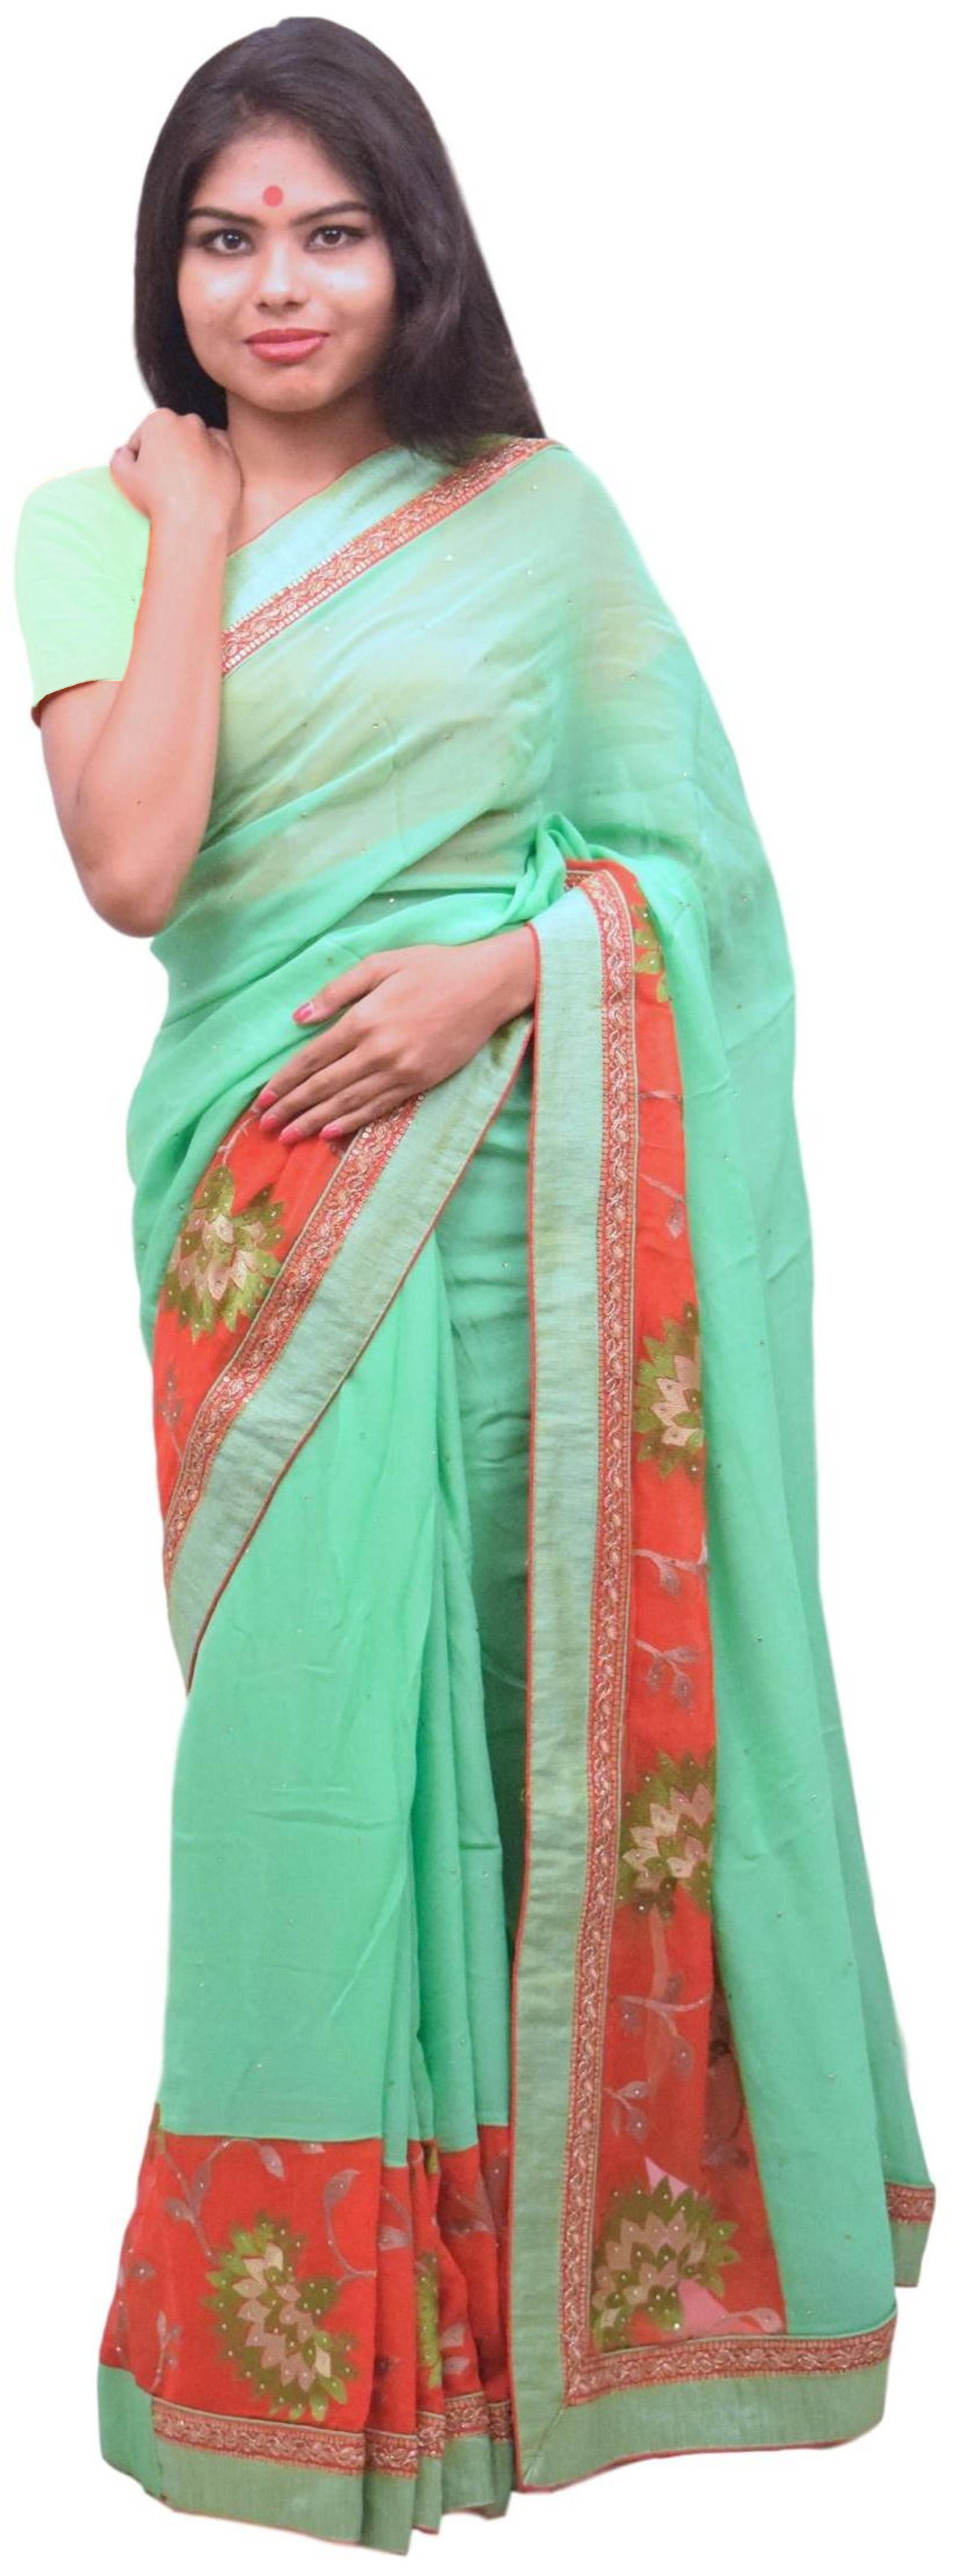 Green & Red Designer Wedding Partywear Ethnic Bridal Georgette (Viscos) Hand Embroidery Stone Zari Bullion Sequence Thread Work Kolkata Women Blouse Saree Sari SAC352